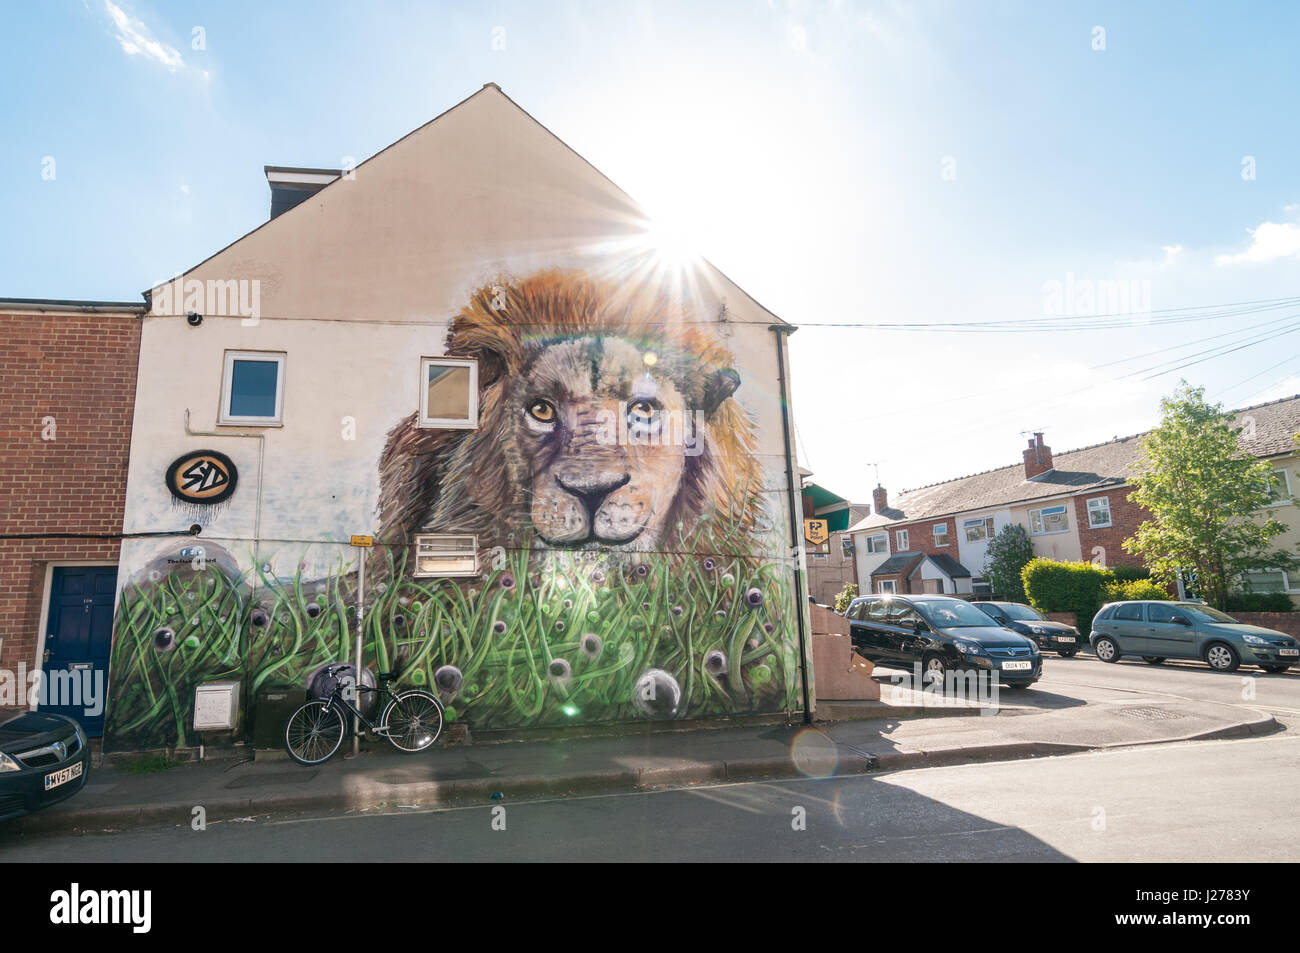 Lion mural on wall in East Oxford, United Kingdom Stock Photo